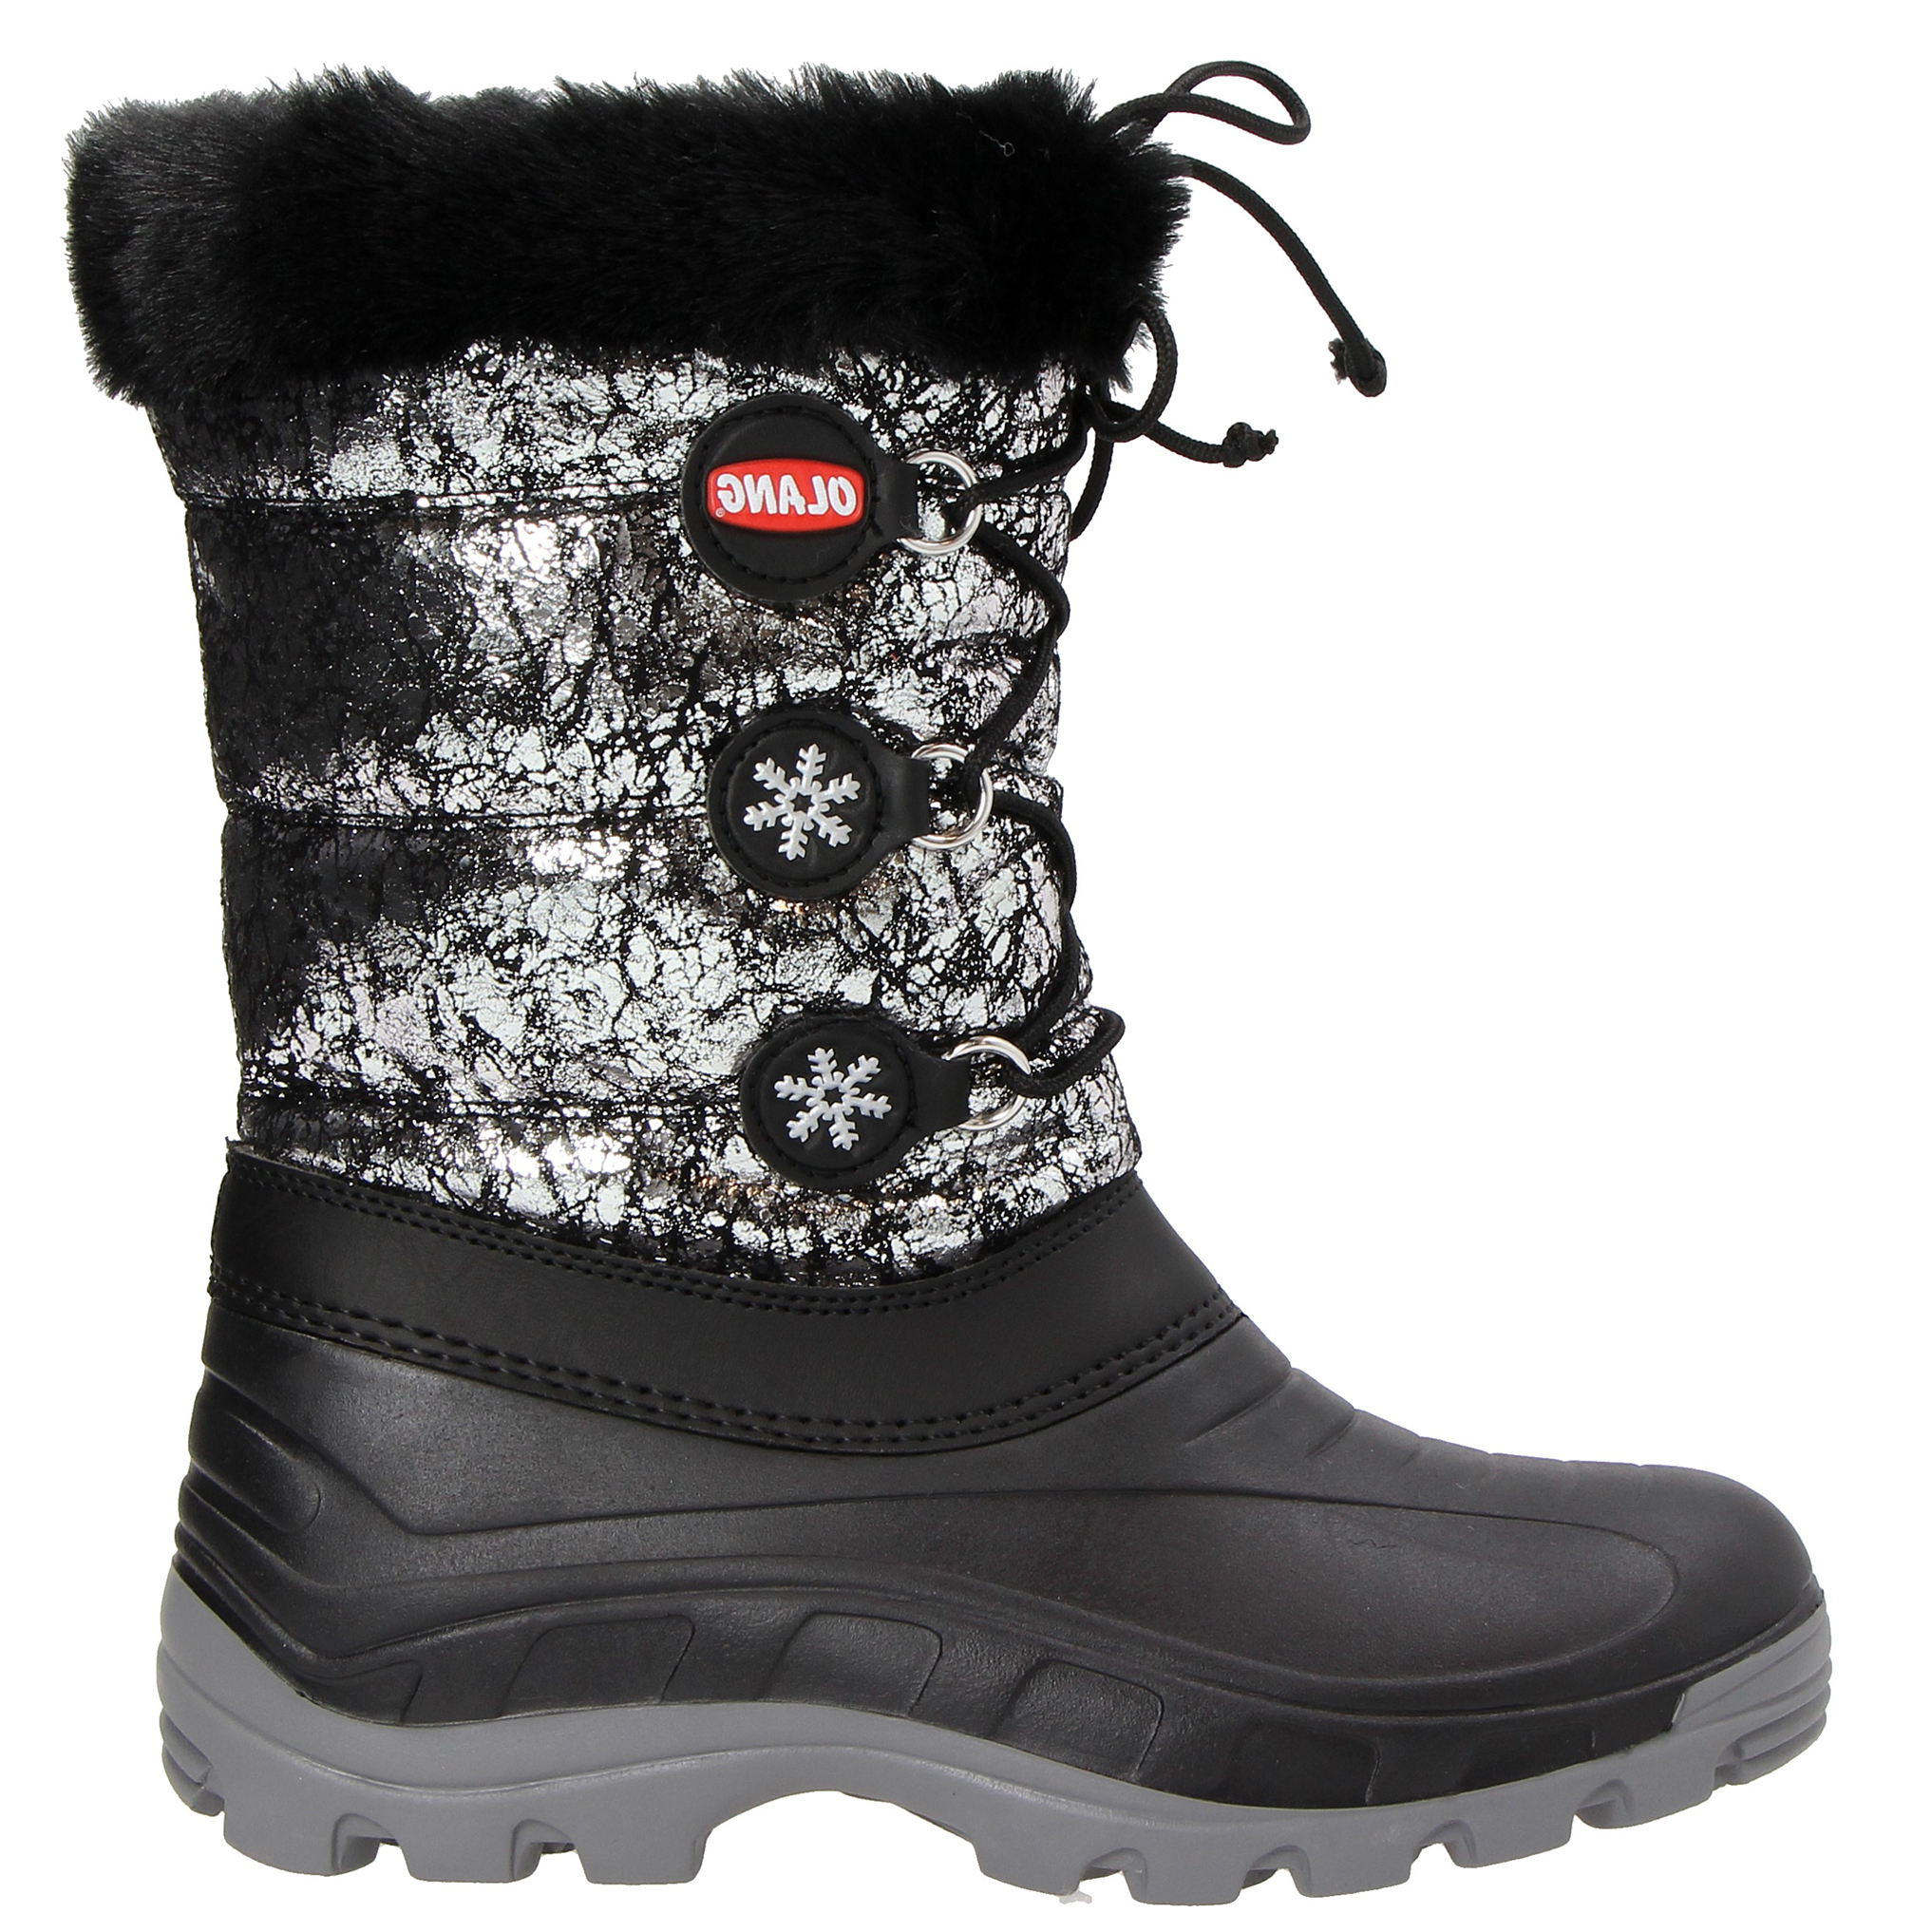 APRES SKI OLANG PATTY LUX WOMAN APRES SKI SHOES-Anthracite